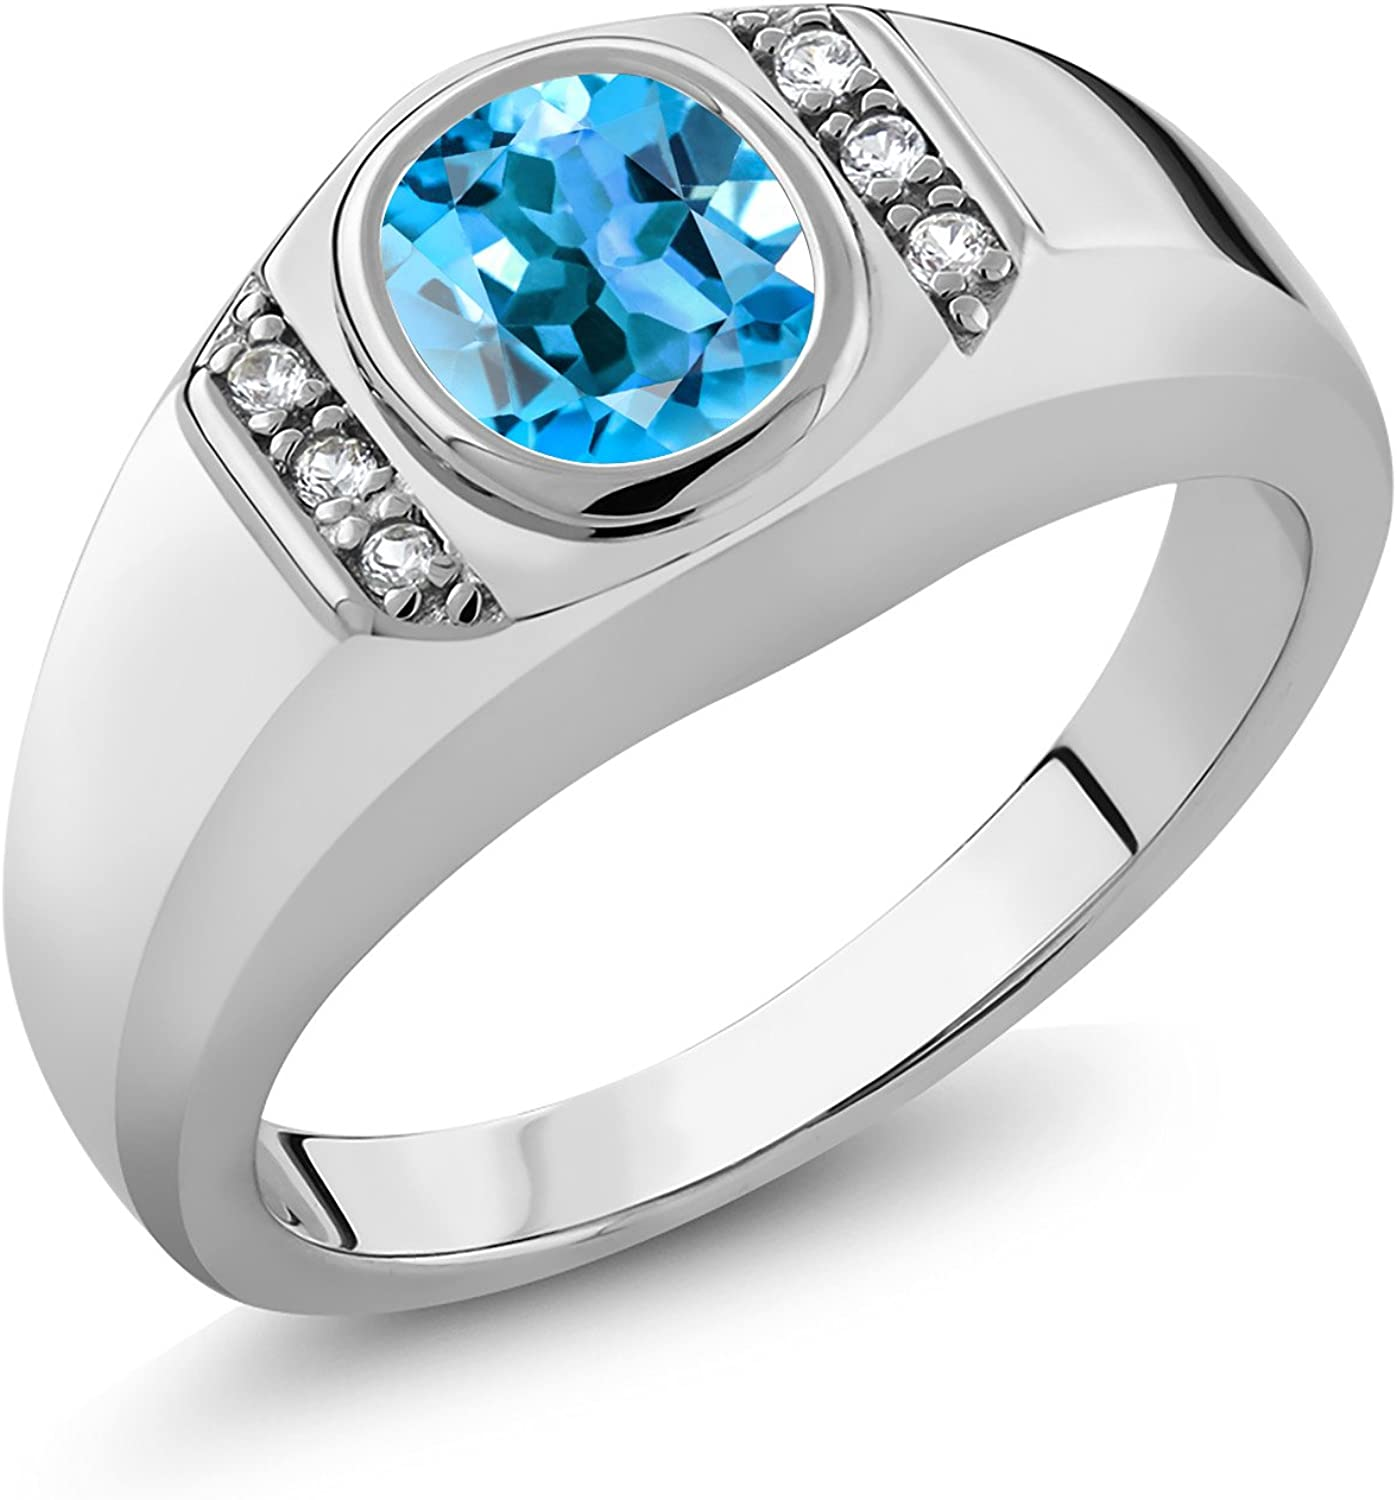 Gem Stone King Men's 925 Sterling Silver Swiss Blue Topaz and White Created Sapphire Ring (1.36 Ct)